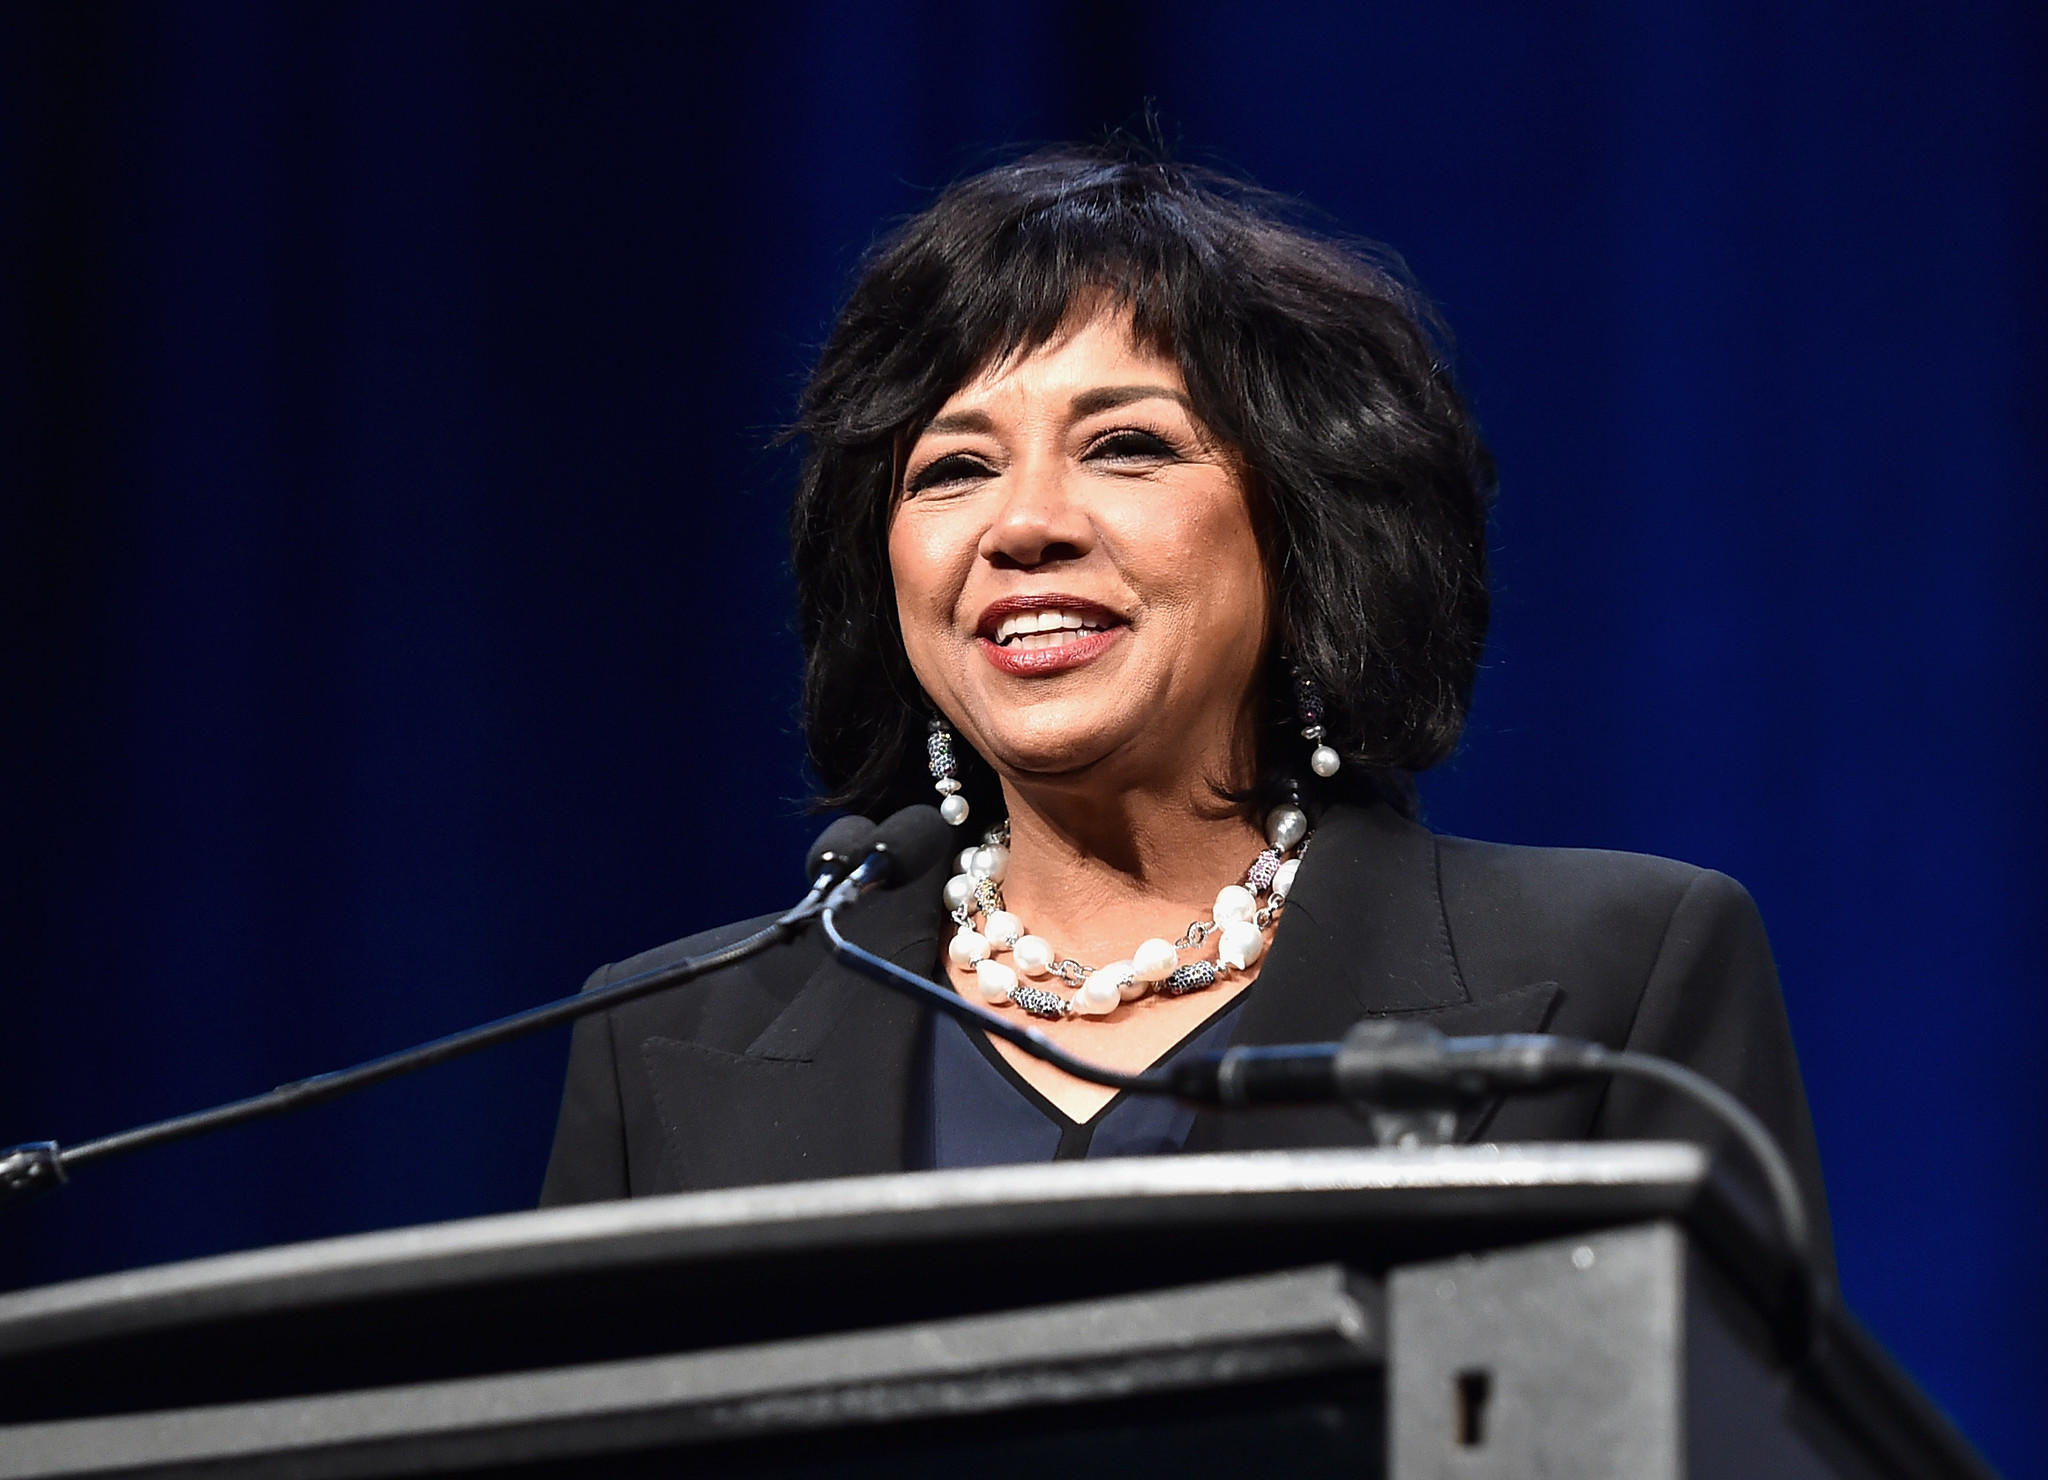 Cheryl Boone Isaacs speaks after receiving the 2017 Will Rogers Pioneer of the Year award. (Alberto E. Rodriguez / Getty Images for CinemaCon)